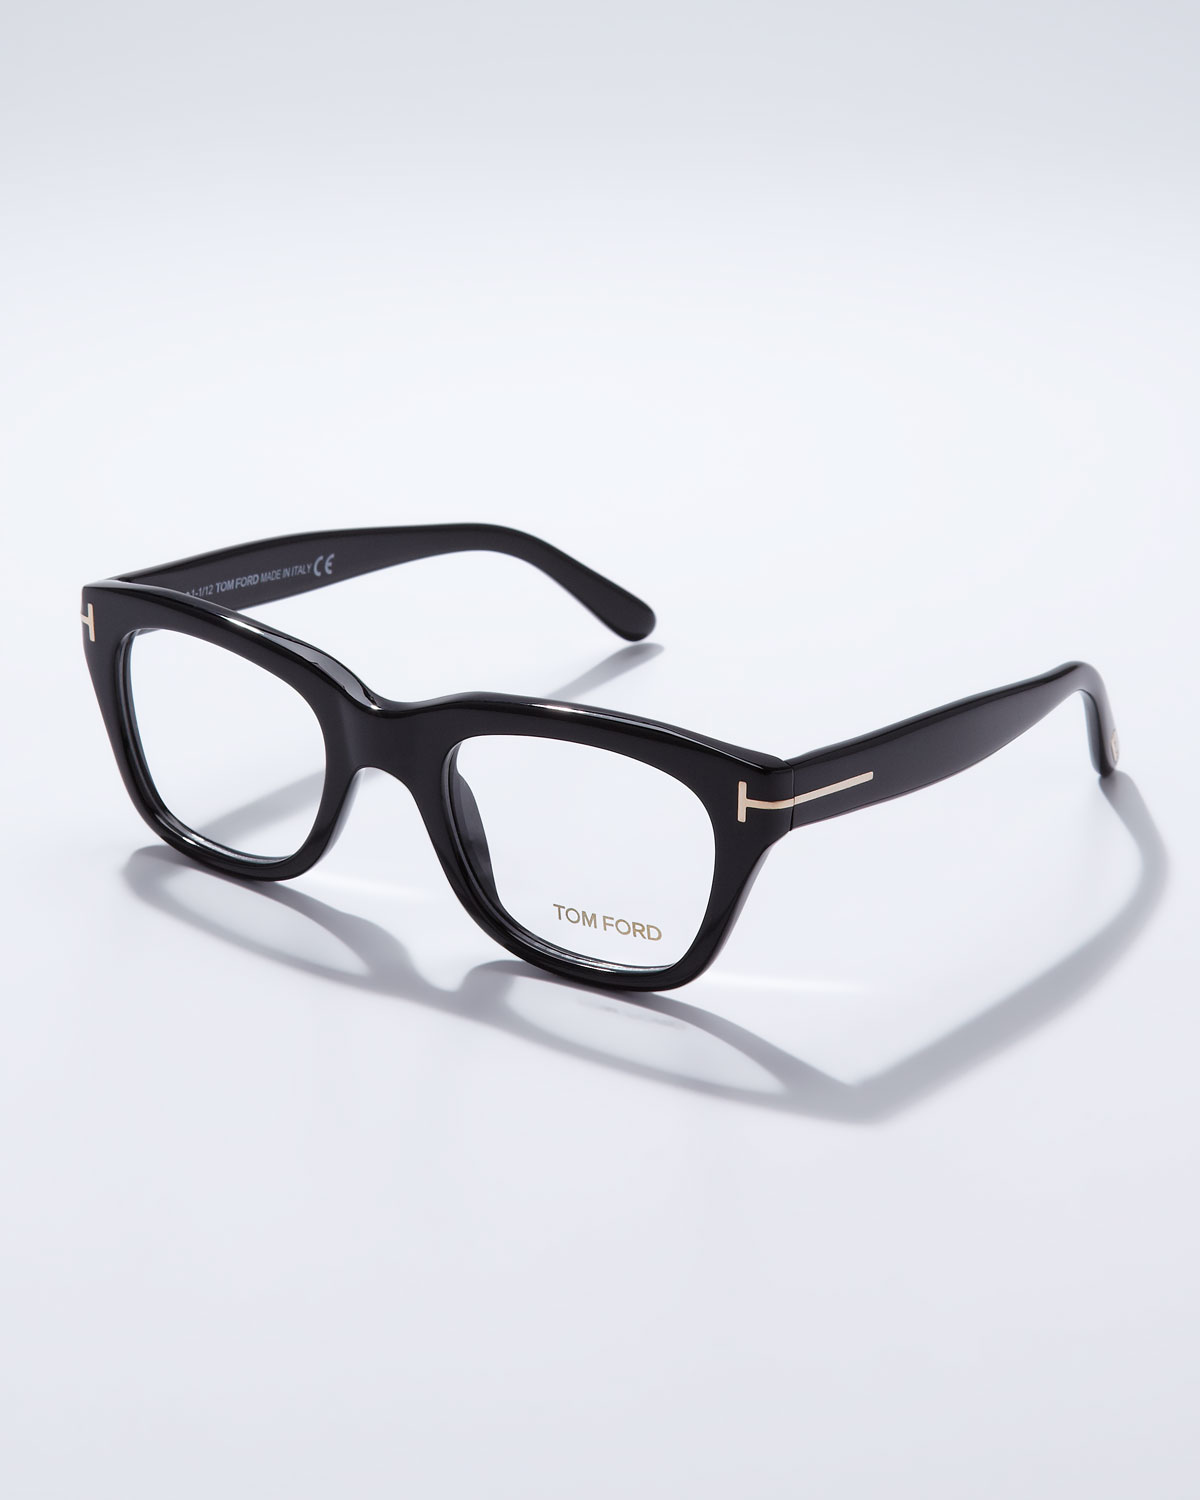 fb17dba248f Lyst - Tom Ford Large Acetate Frame Fashion Glasses in Black for Men